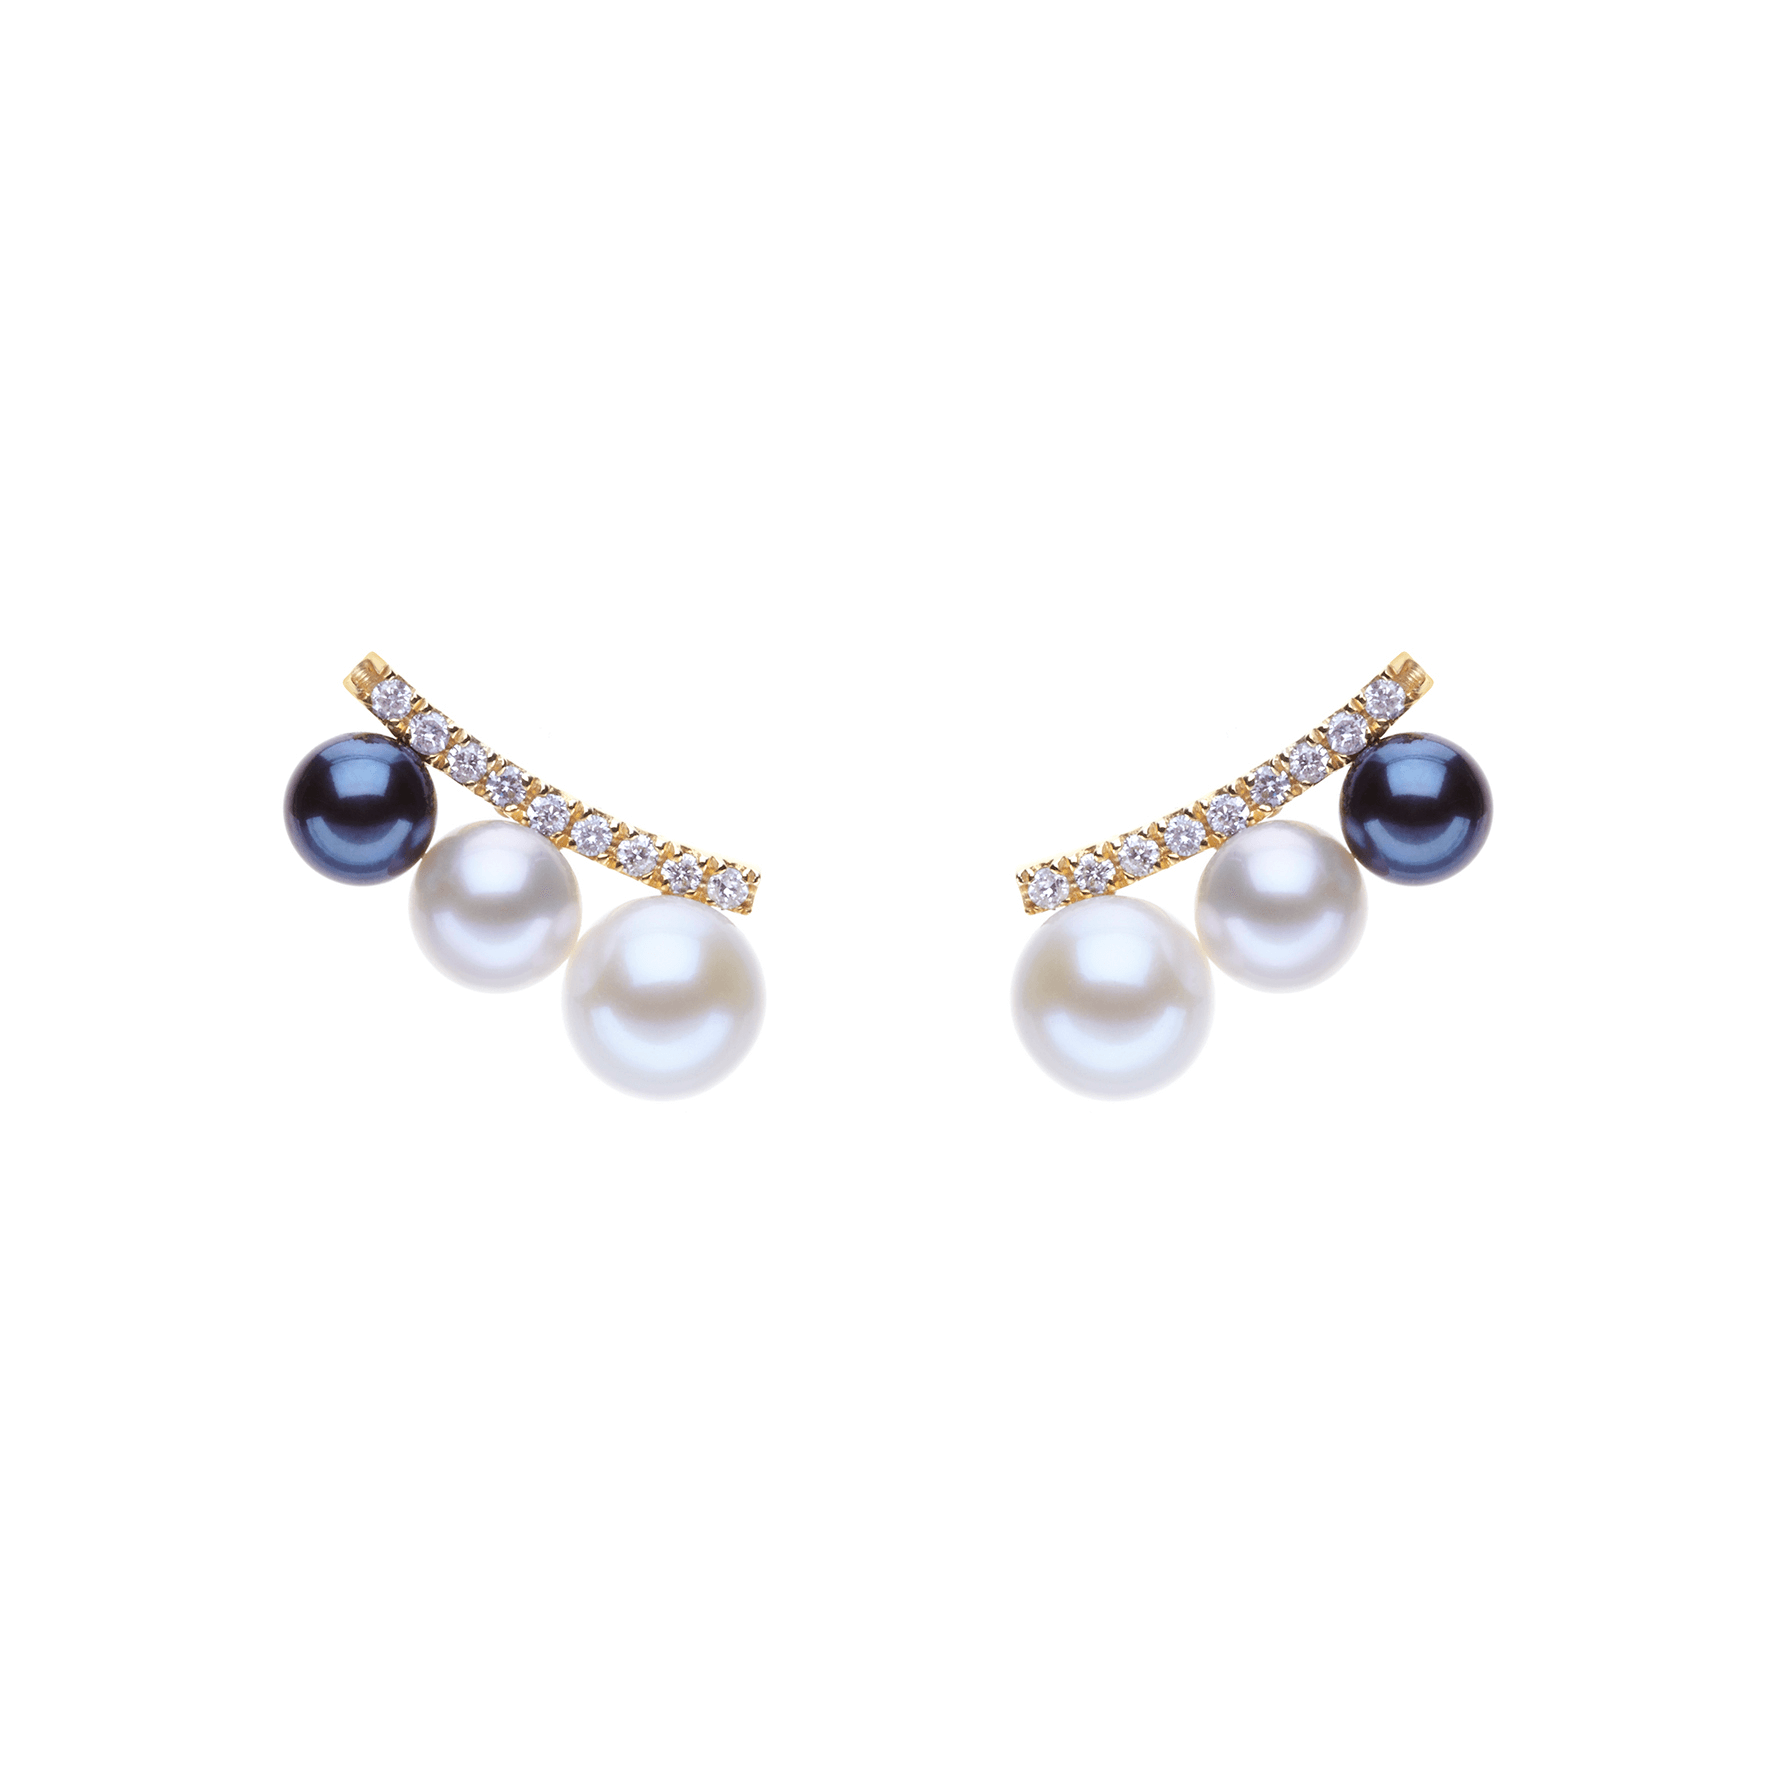 BE004 - Diamond Earlobe Balance Earrings